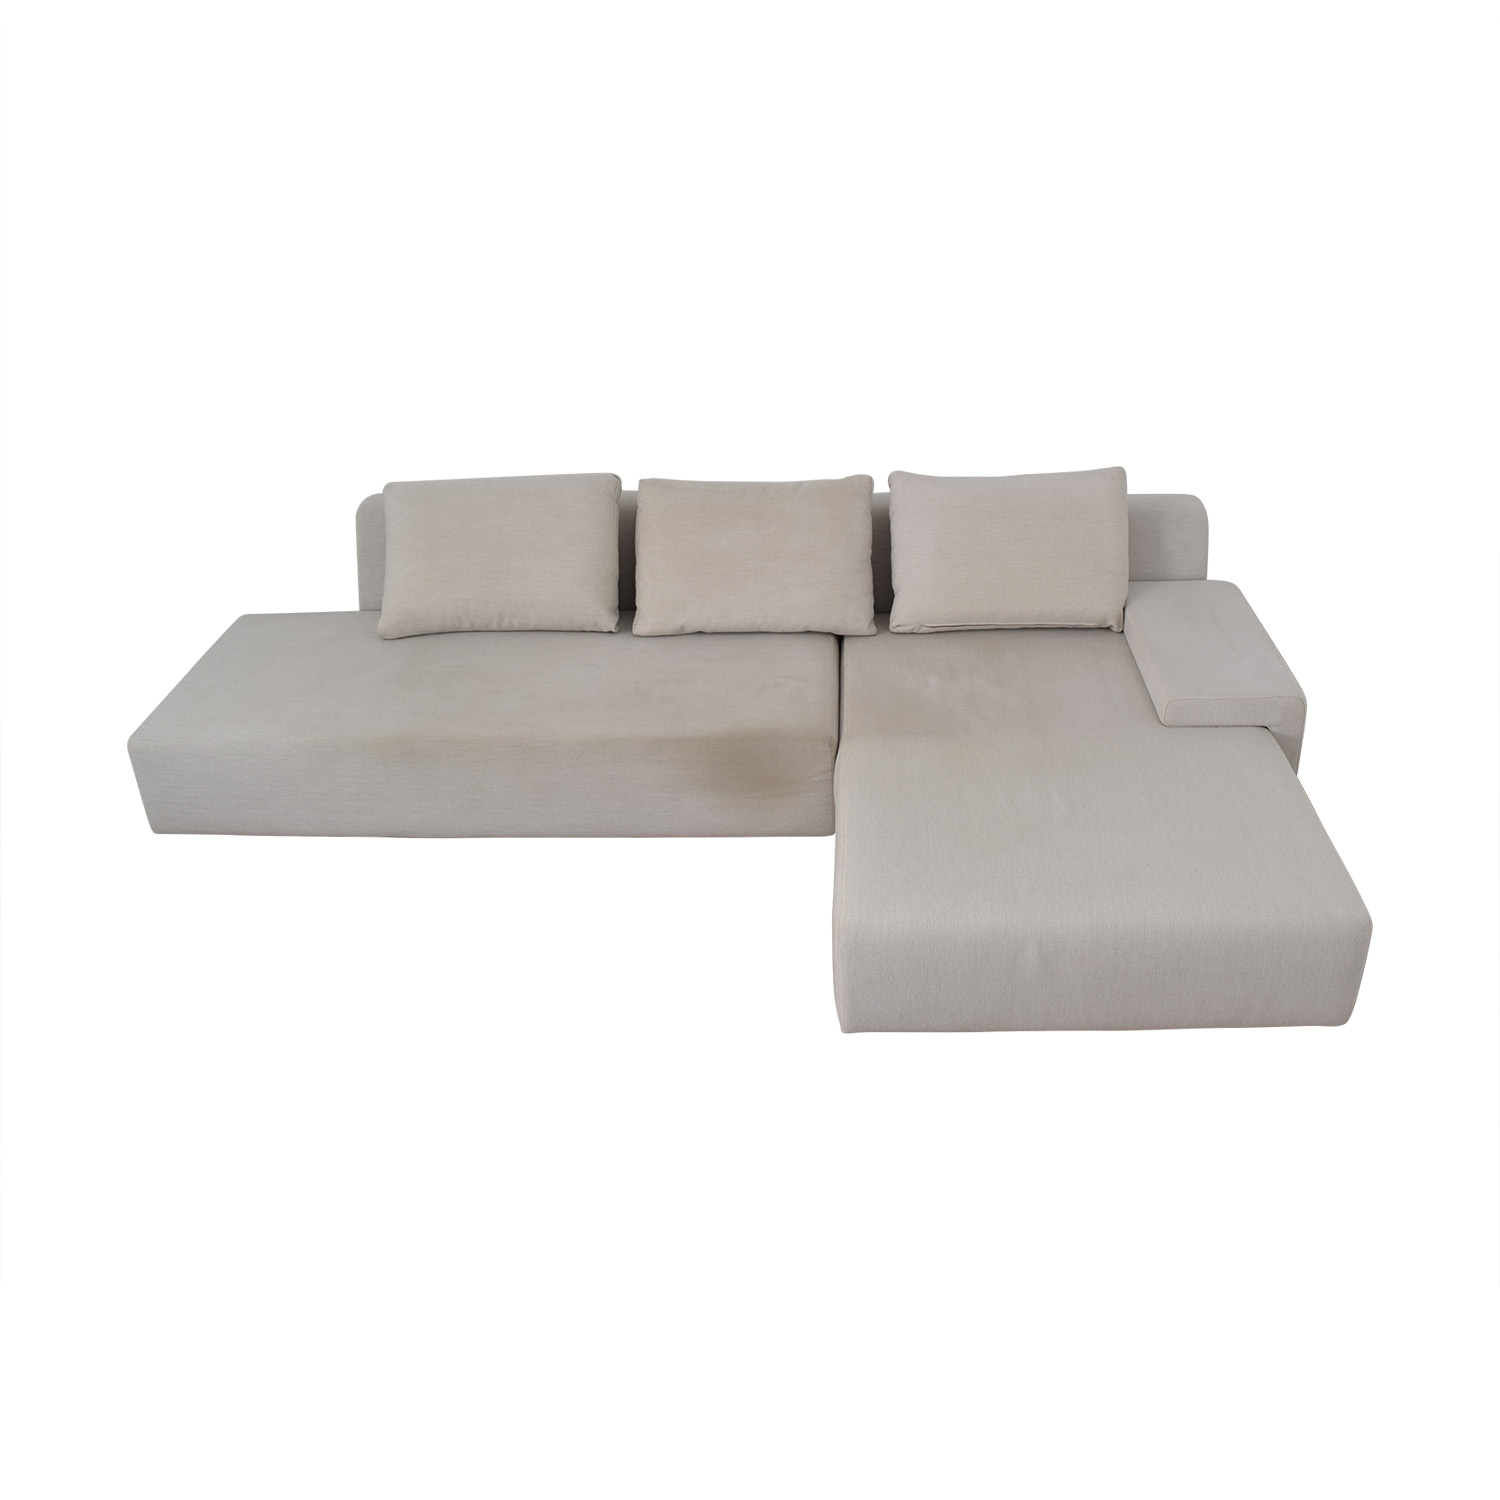 Viccarbe Viccarbe White Sectional used